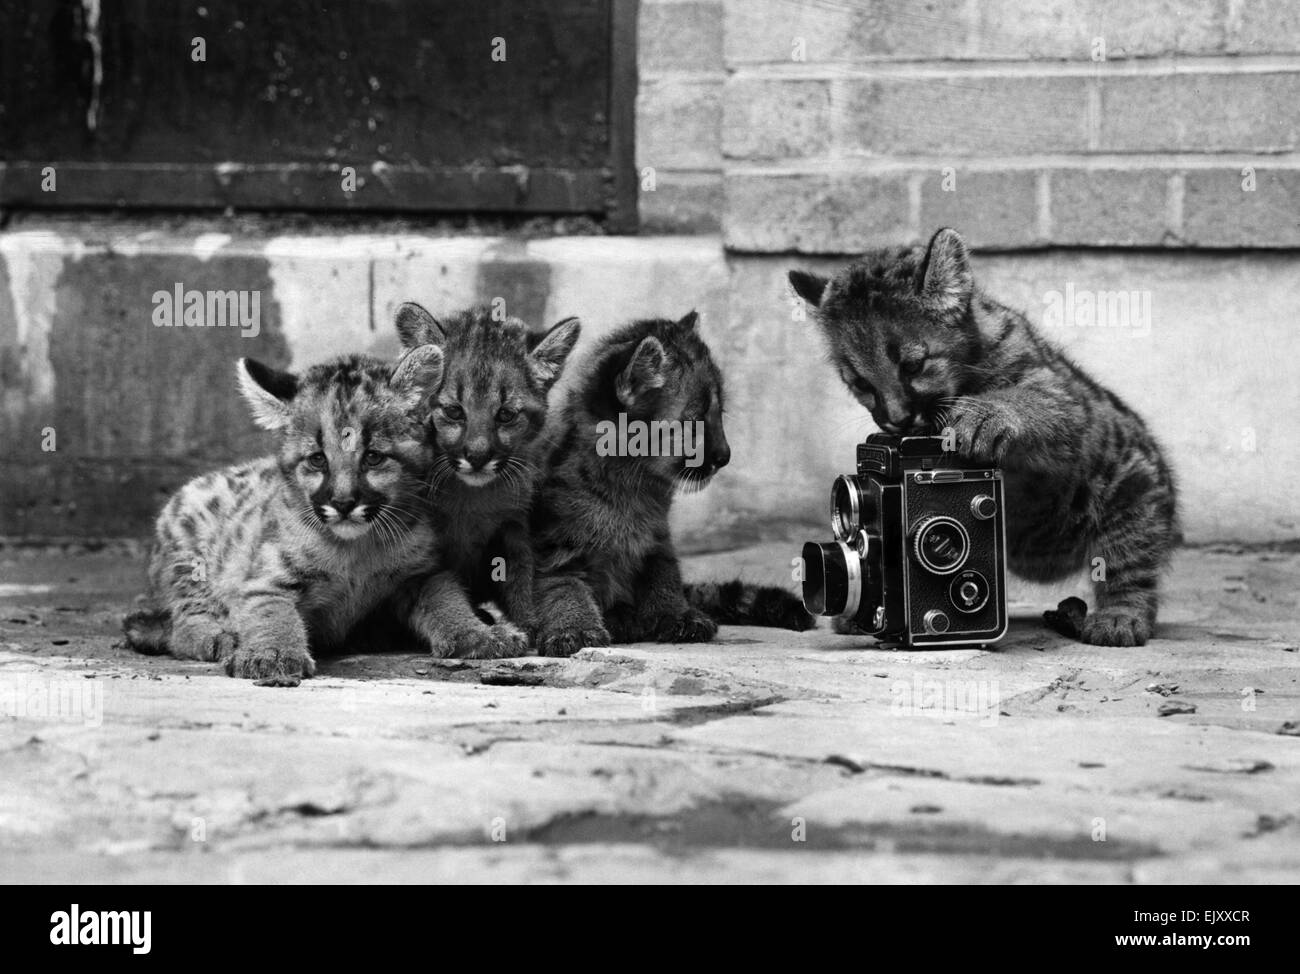 Puma cubs at Calder Park Zoo, one with a camera. 11th July 1973. - Stock Image